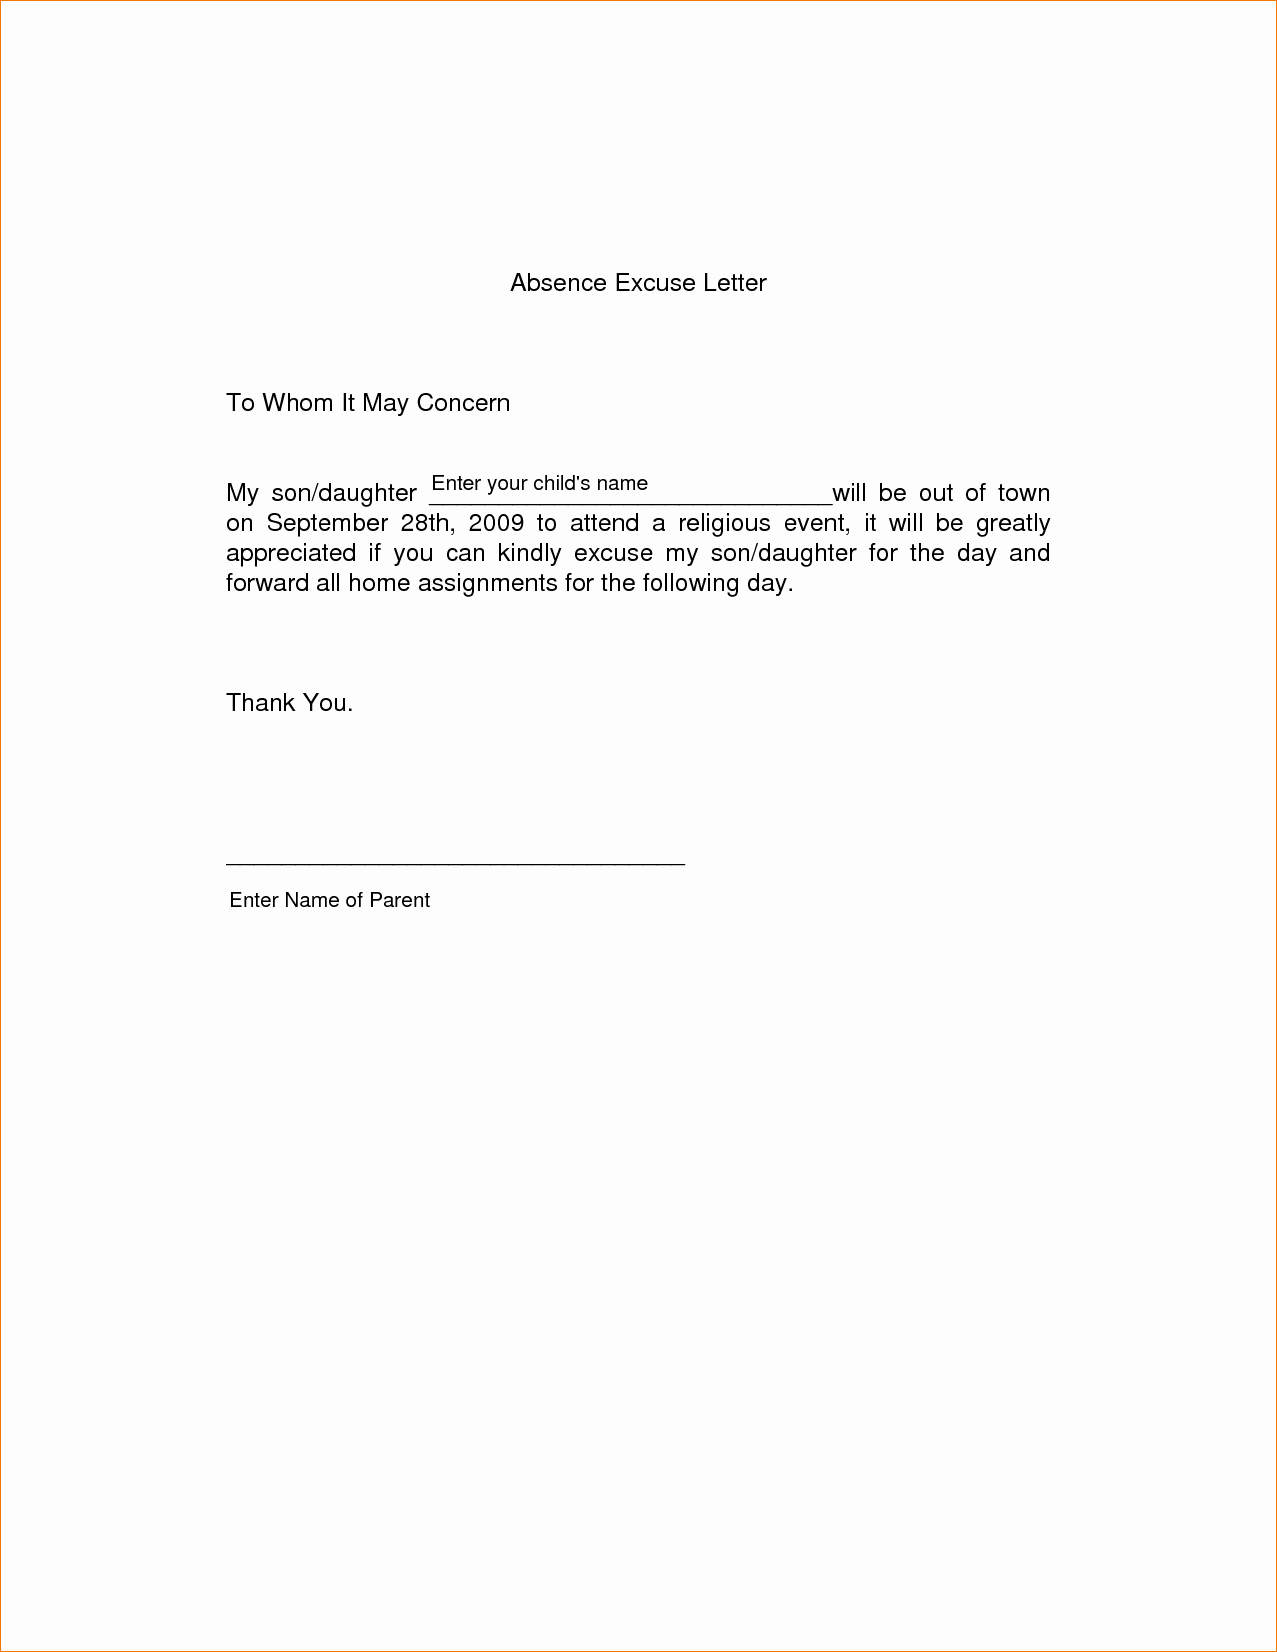 Absence From School Letter Sample Best Of 11 Absence Excuse Letteragenda Template Sample